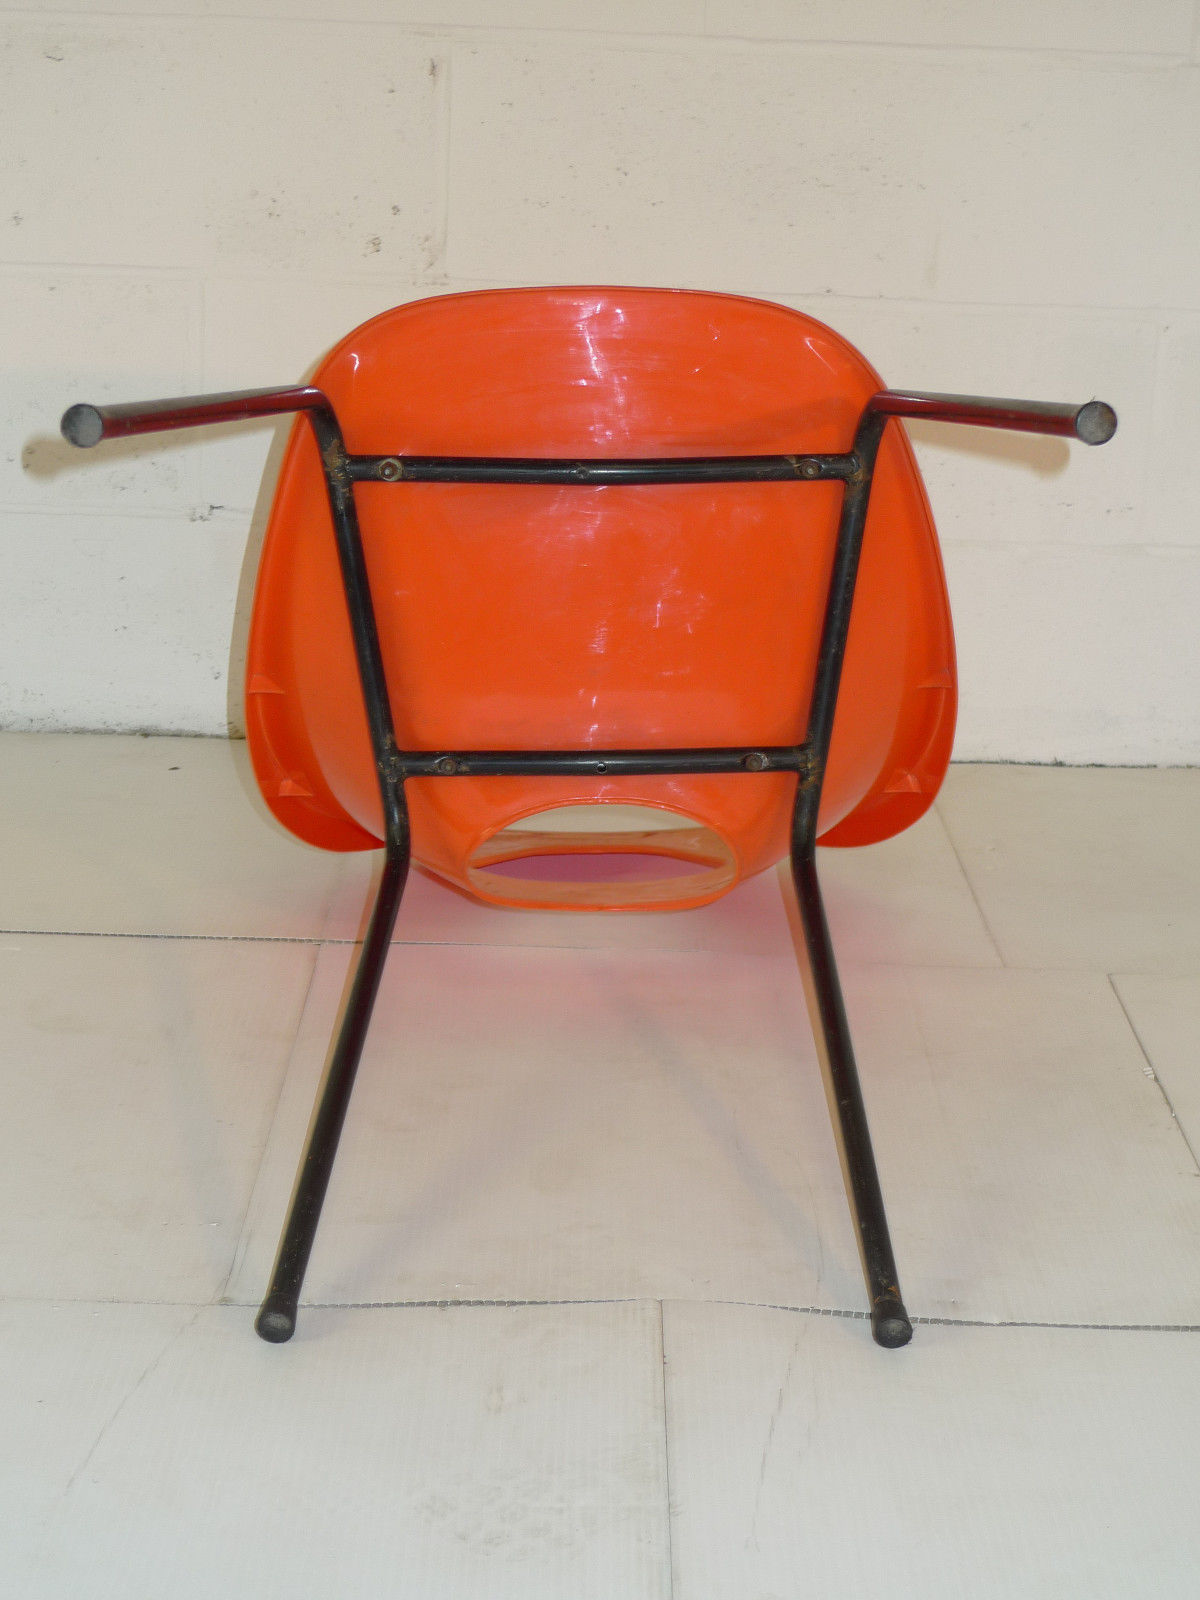 mid century modern plastic chairs chair design for bedroom orange space age eames era